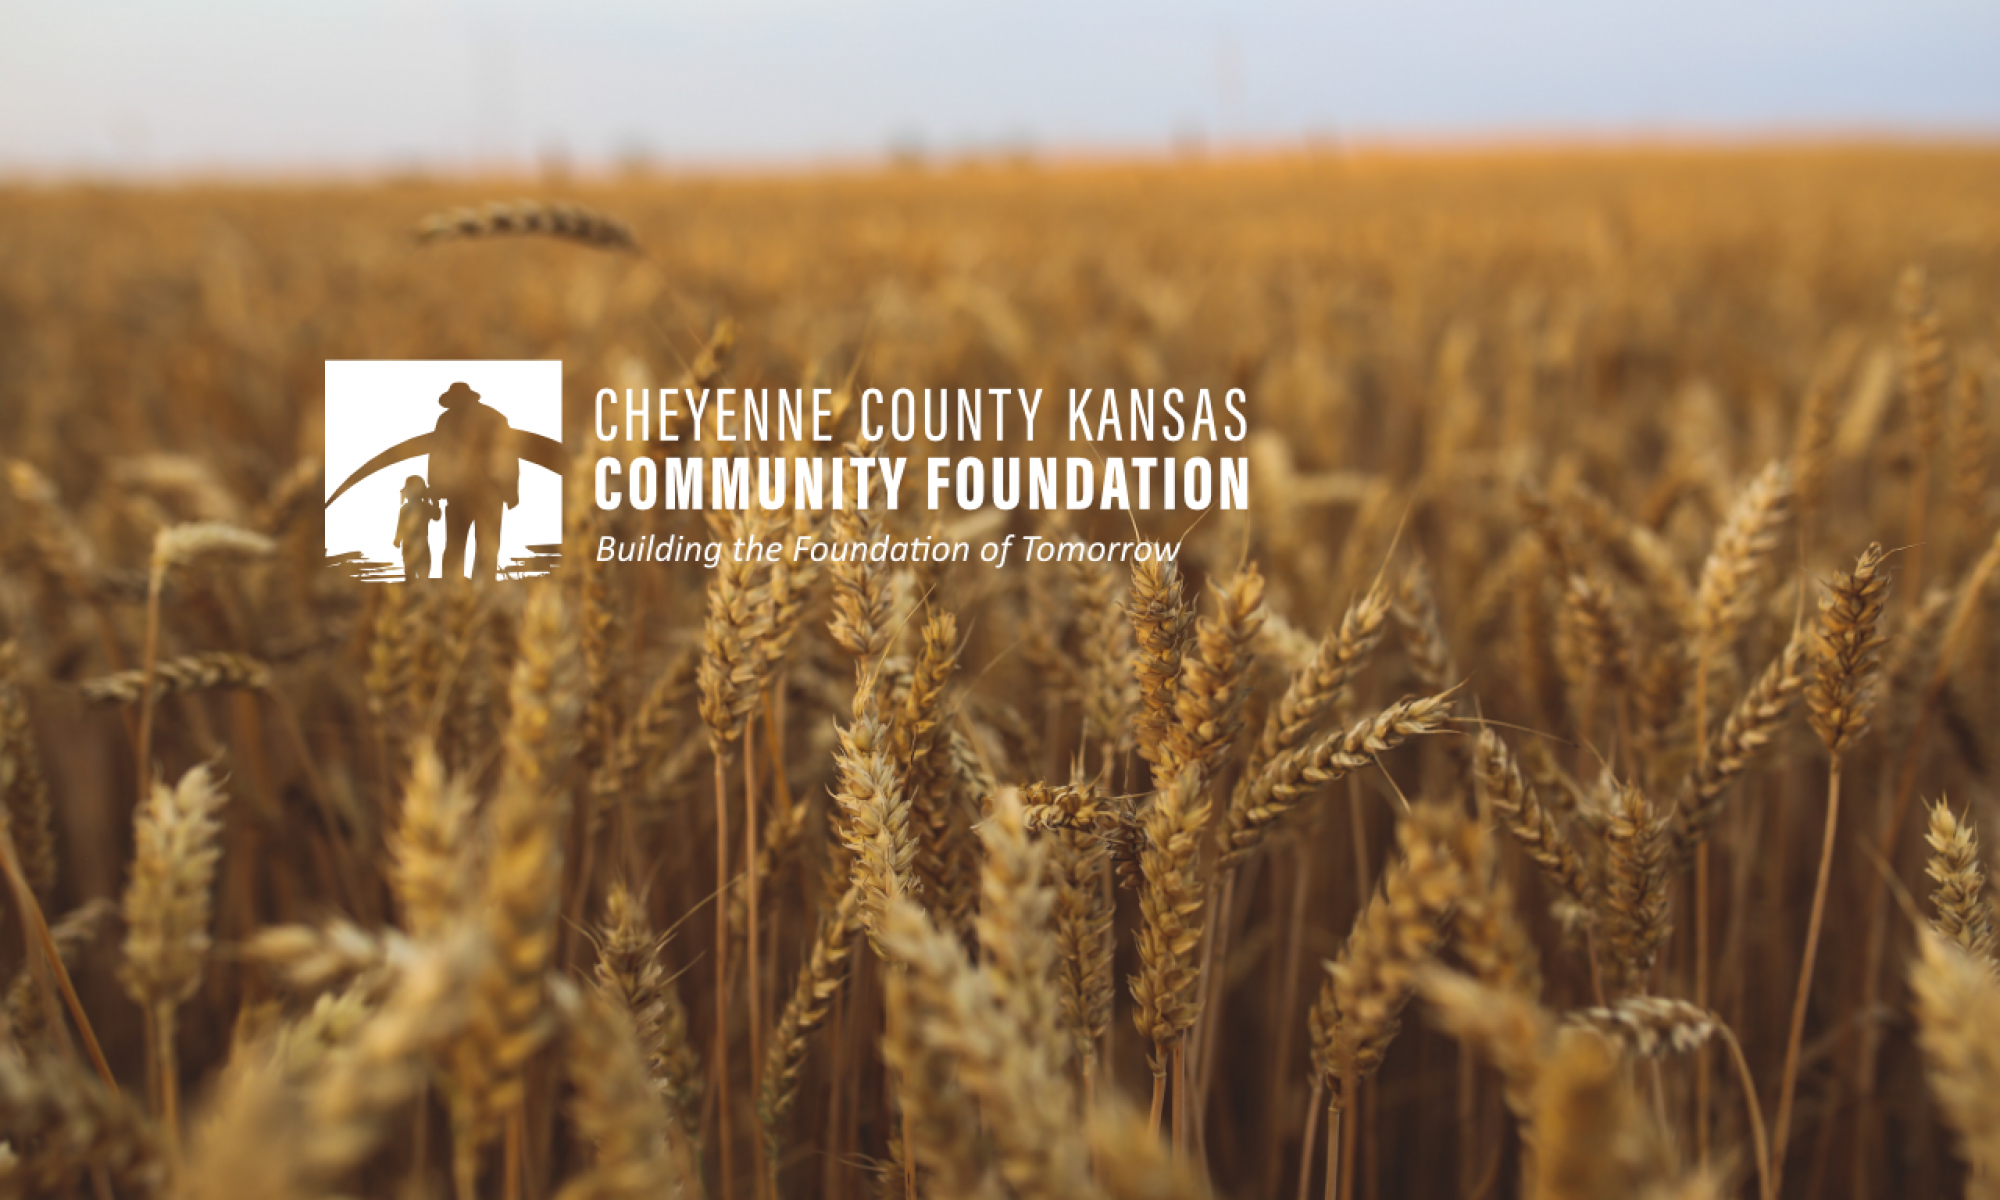 Cheyenne County Kansas Community Foundation